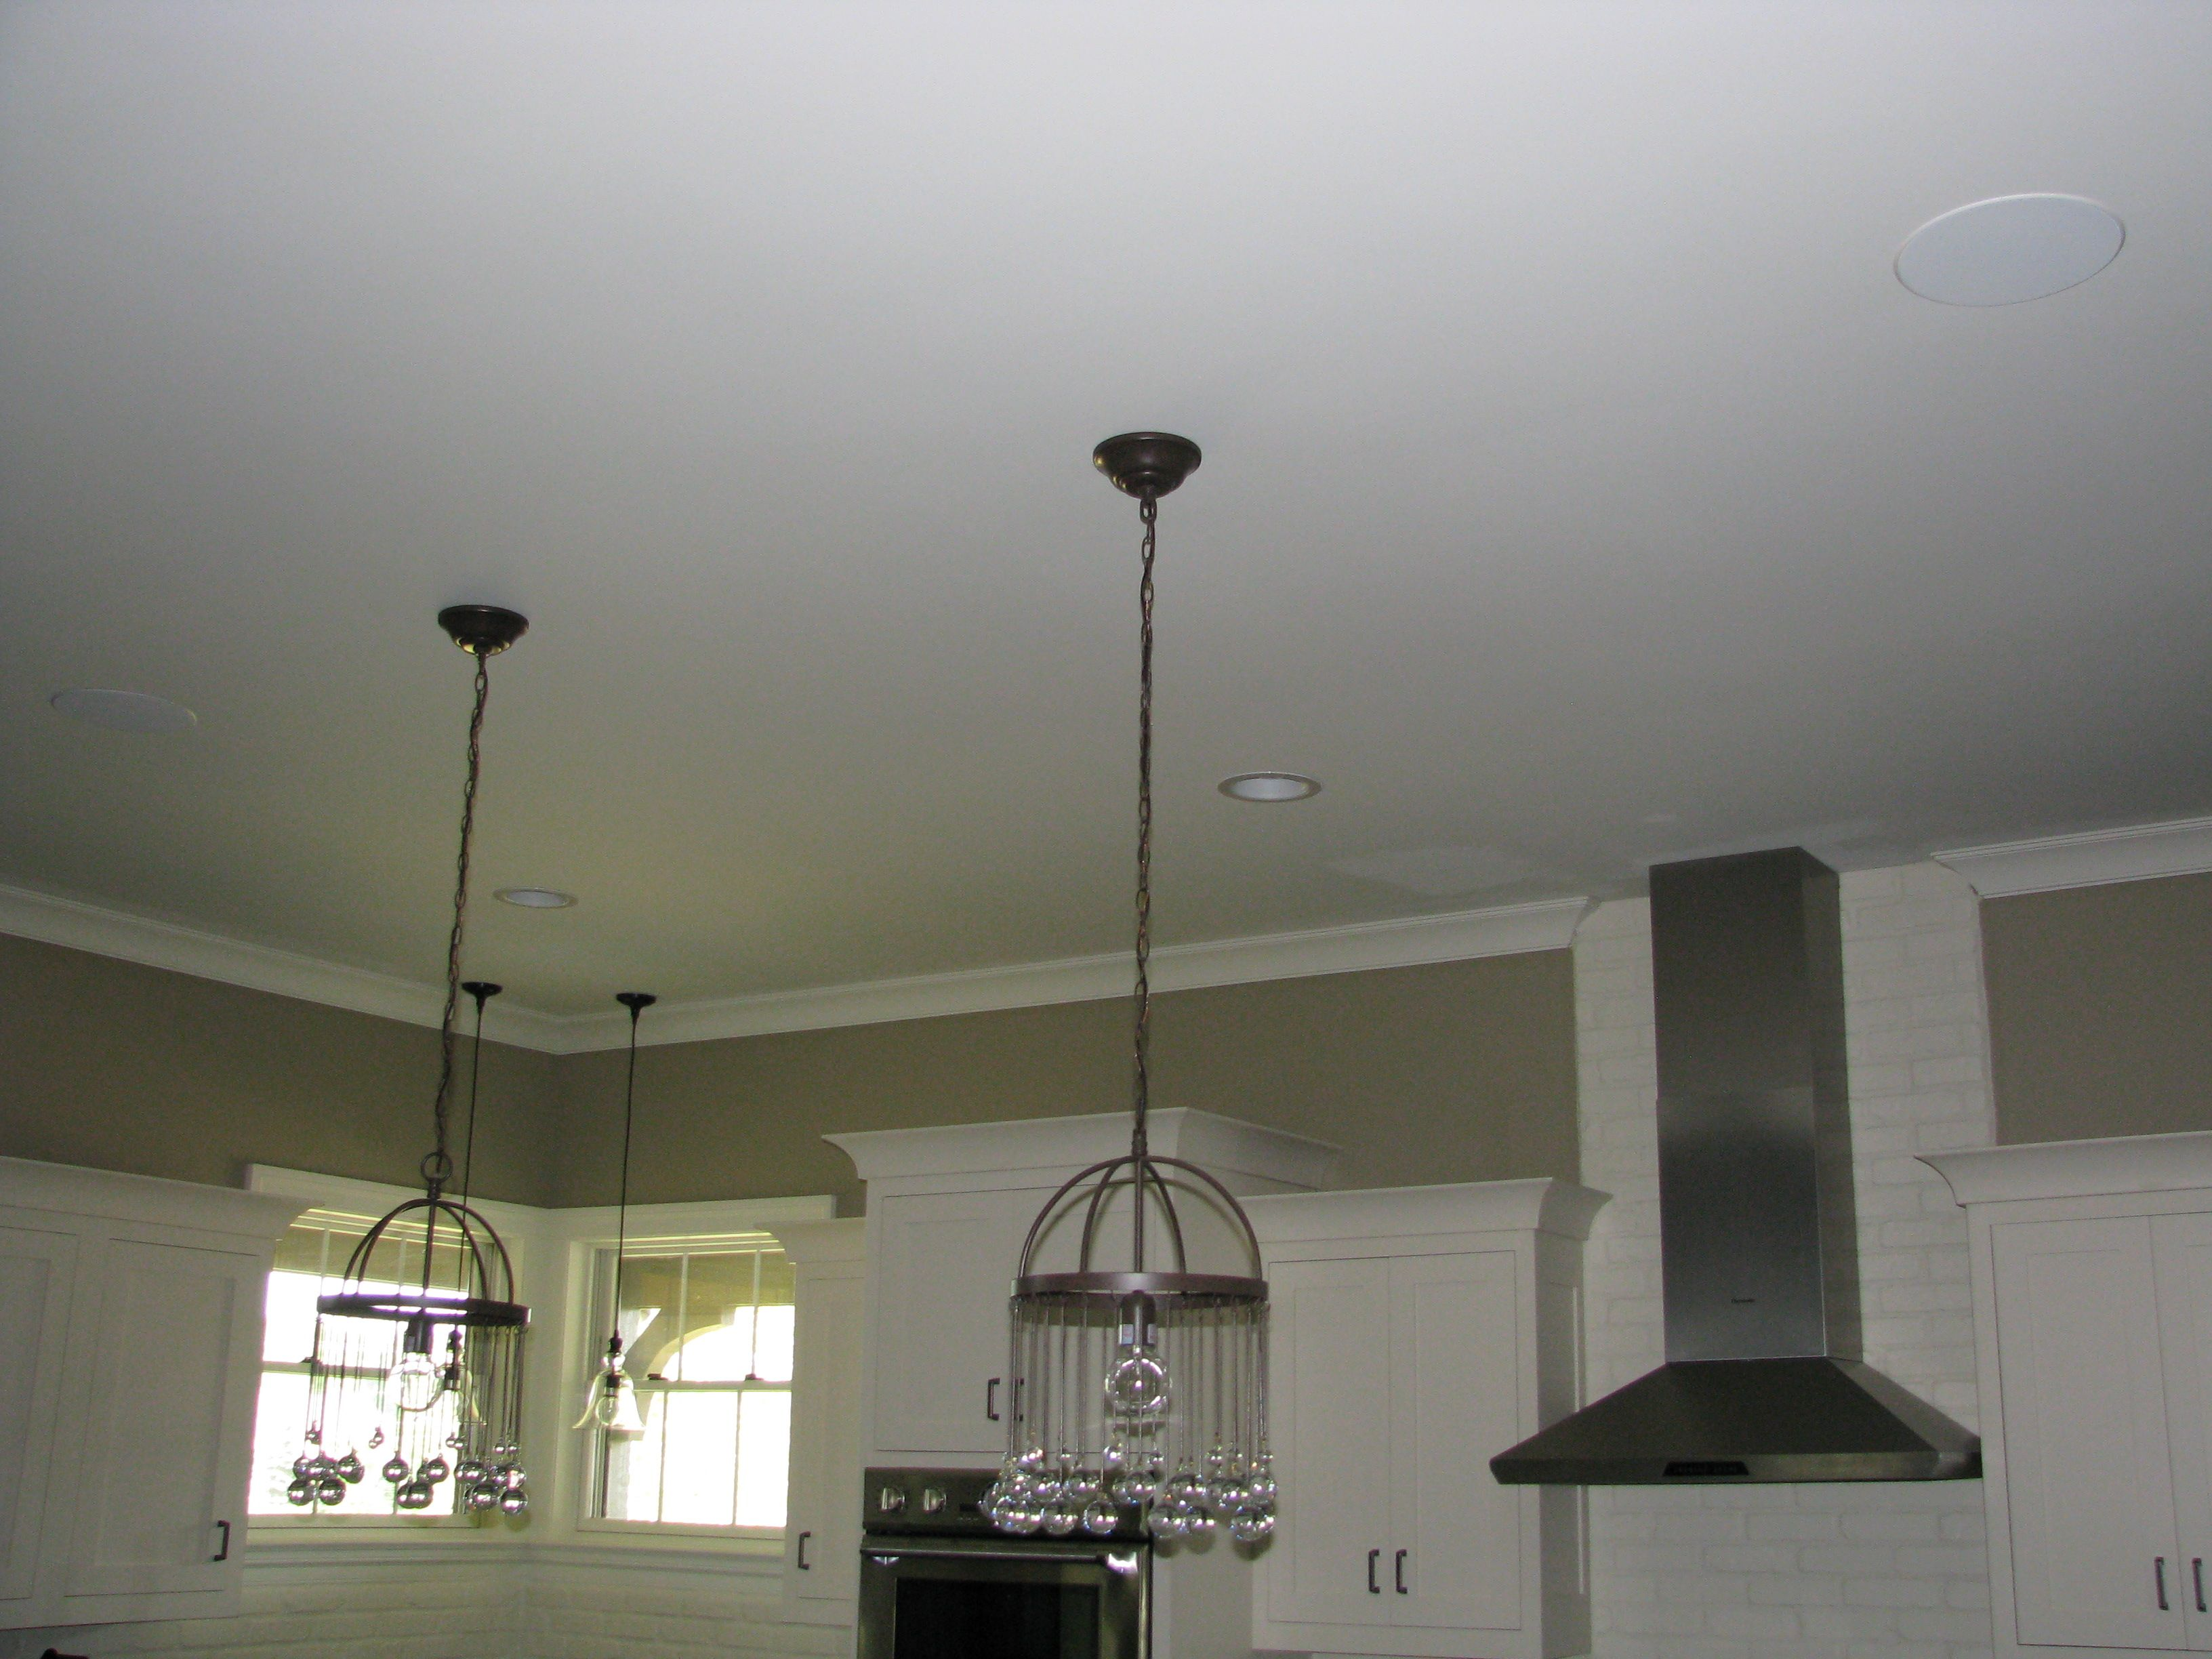 Sonance In Ceiling Speakers For Distributed Audio In Kitchen